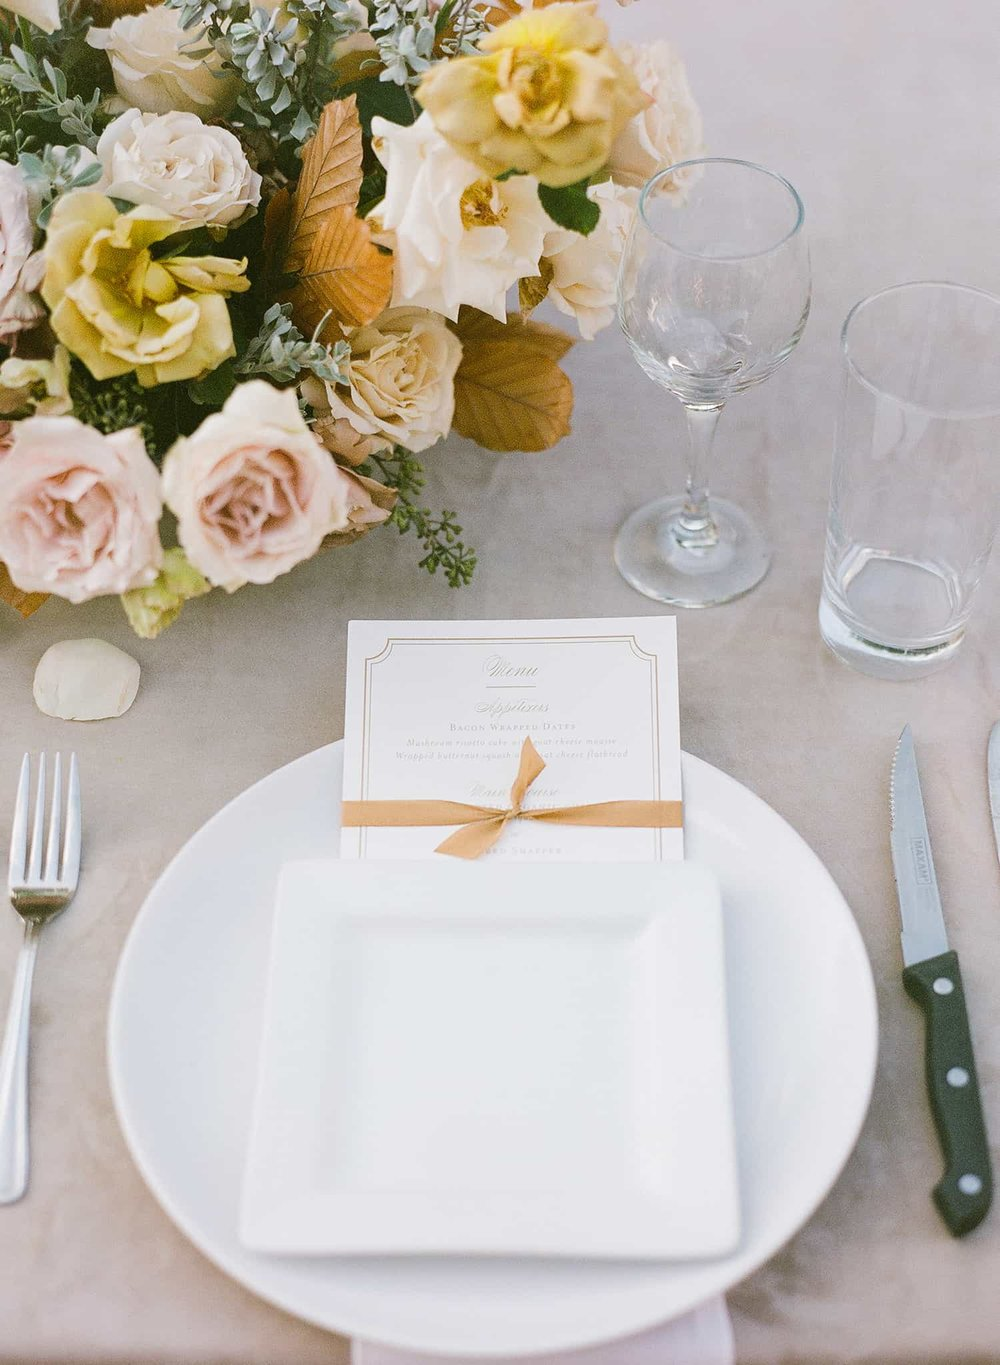 Table floral centerpiece by Color Theory Collective